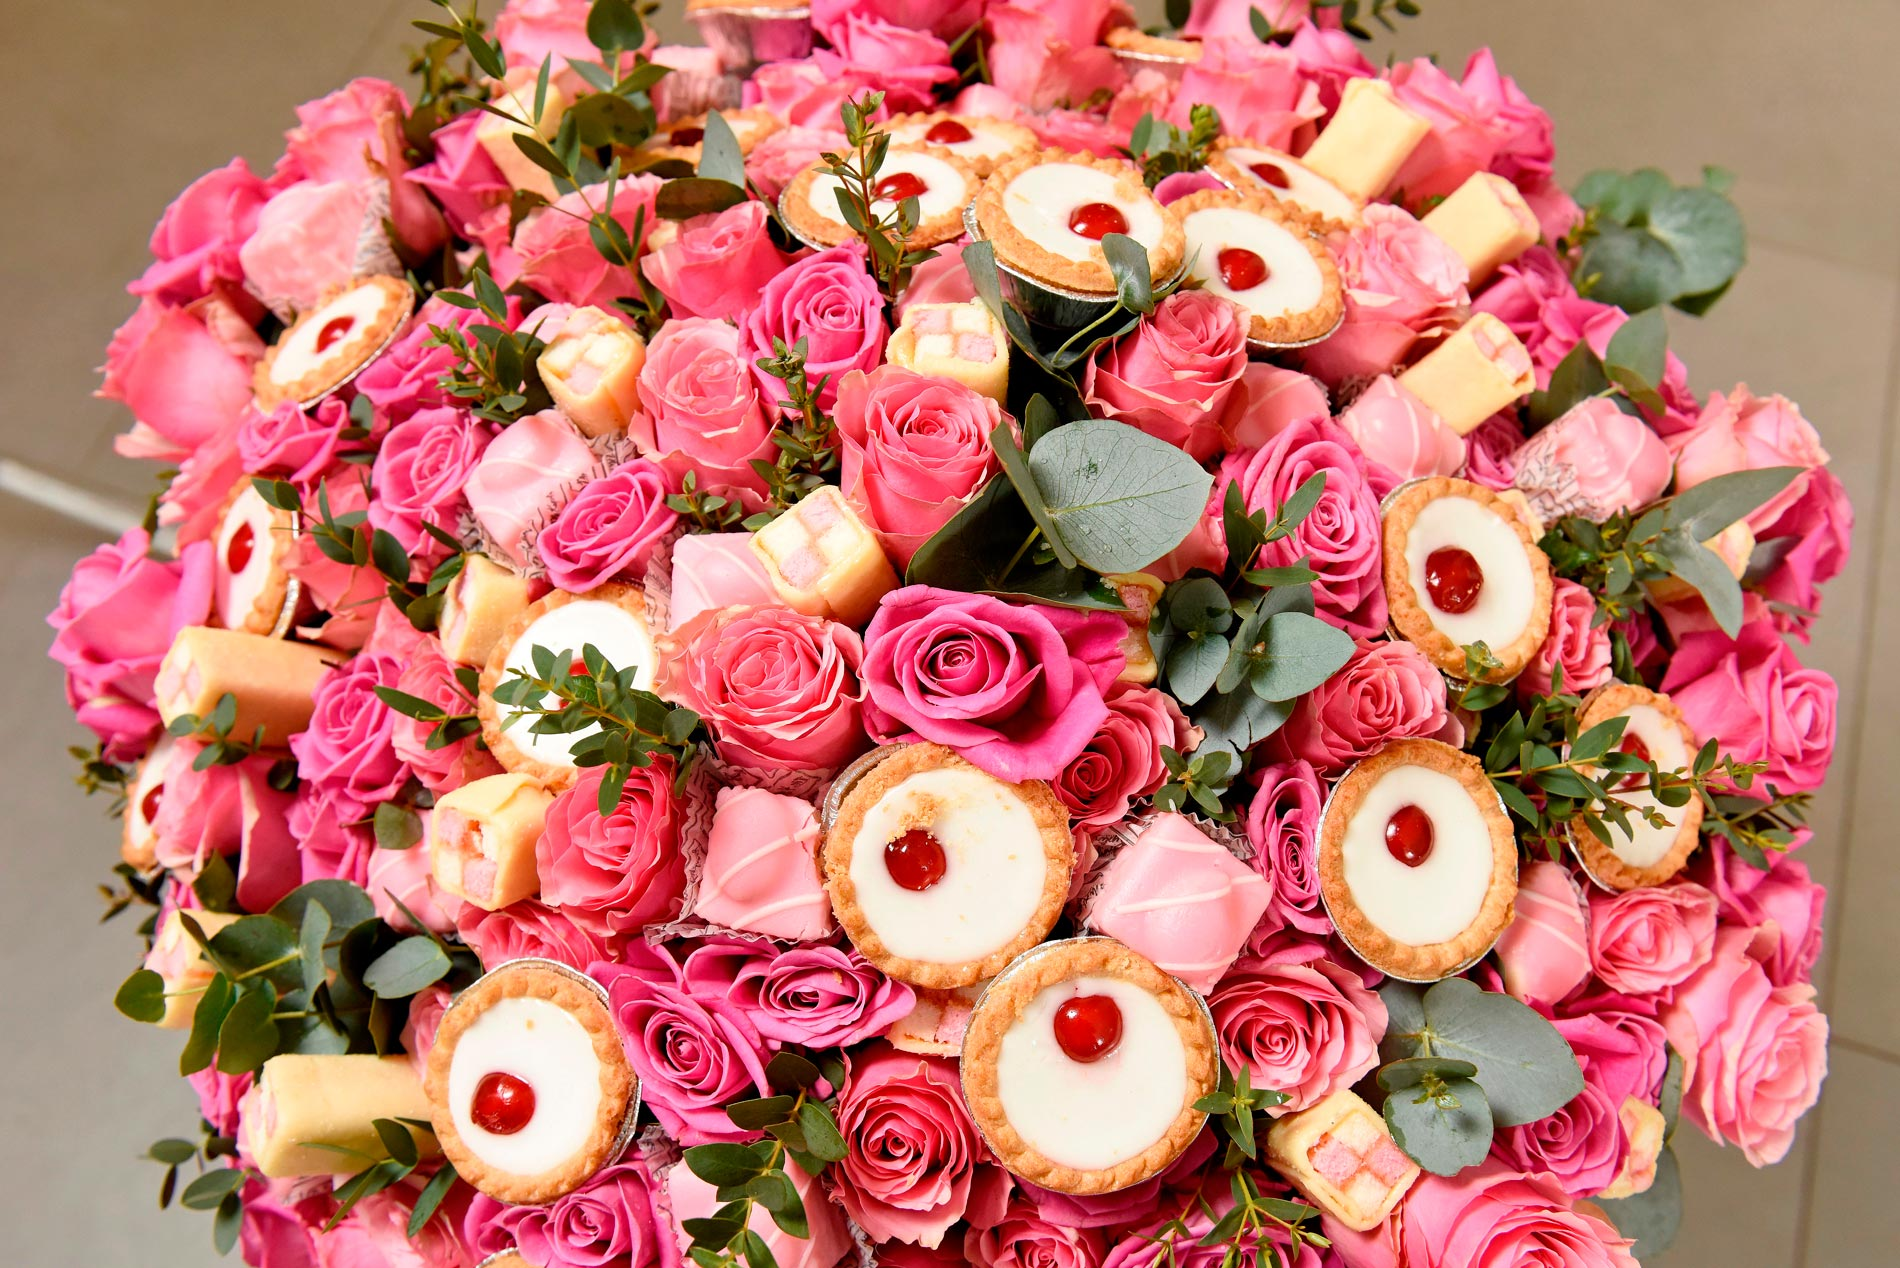 Mr-Kipling-Cake-Bouquet-4